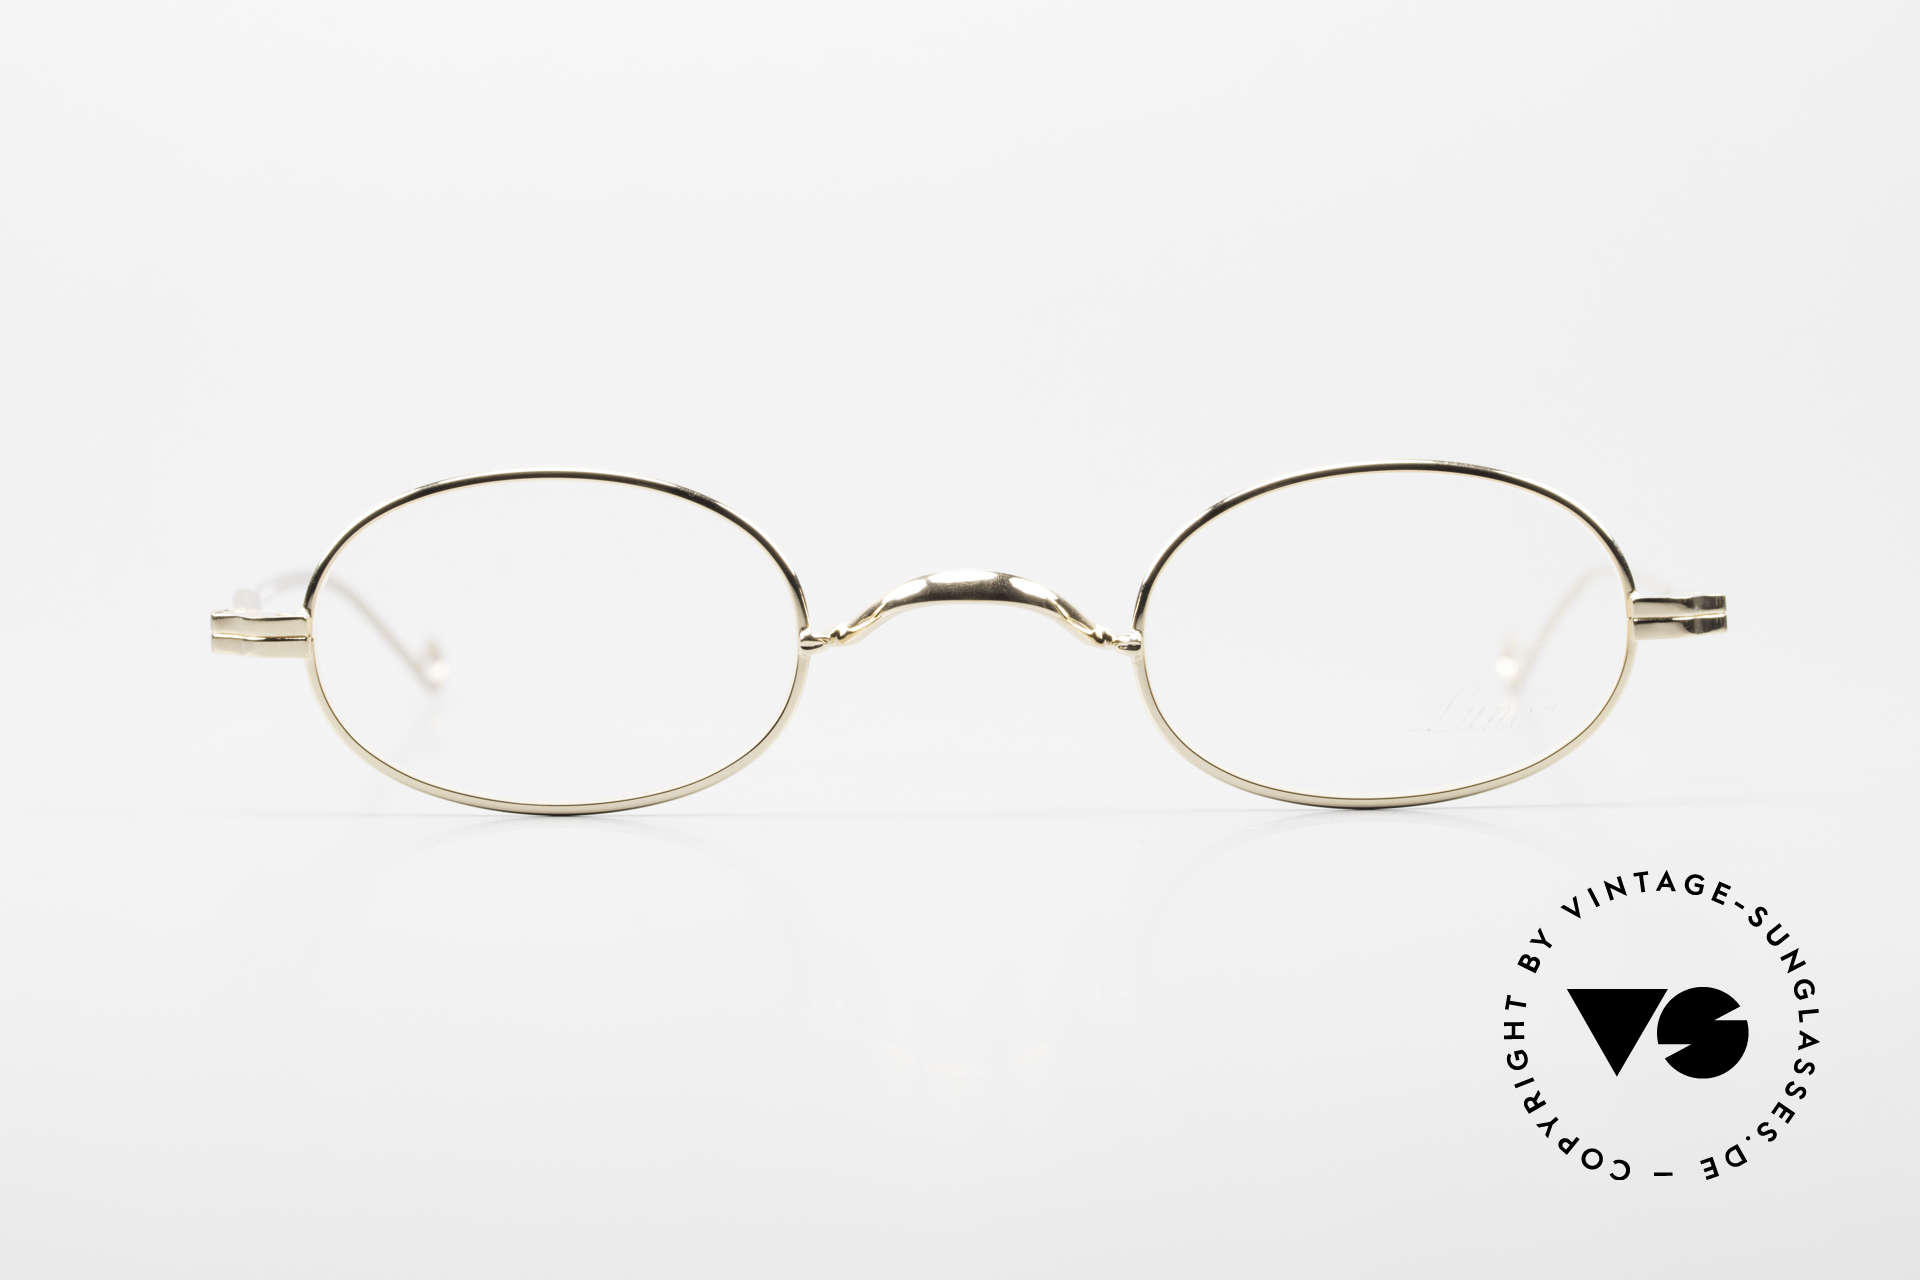 Lunor II 08 Oval Lunor Frame Gold Plated, traditional German brand; quality handmade in Germany, Made for Men and Women